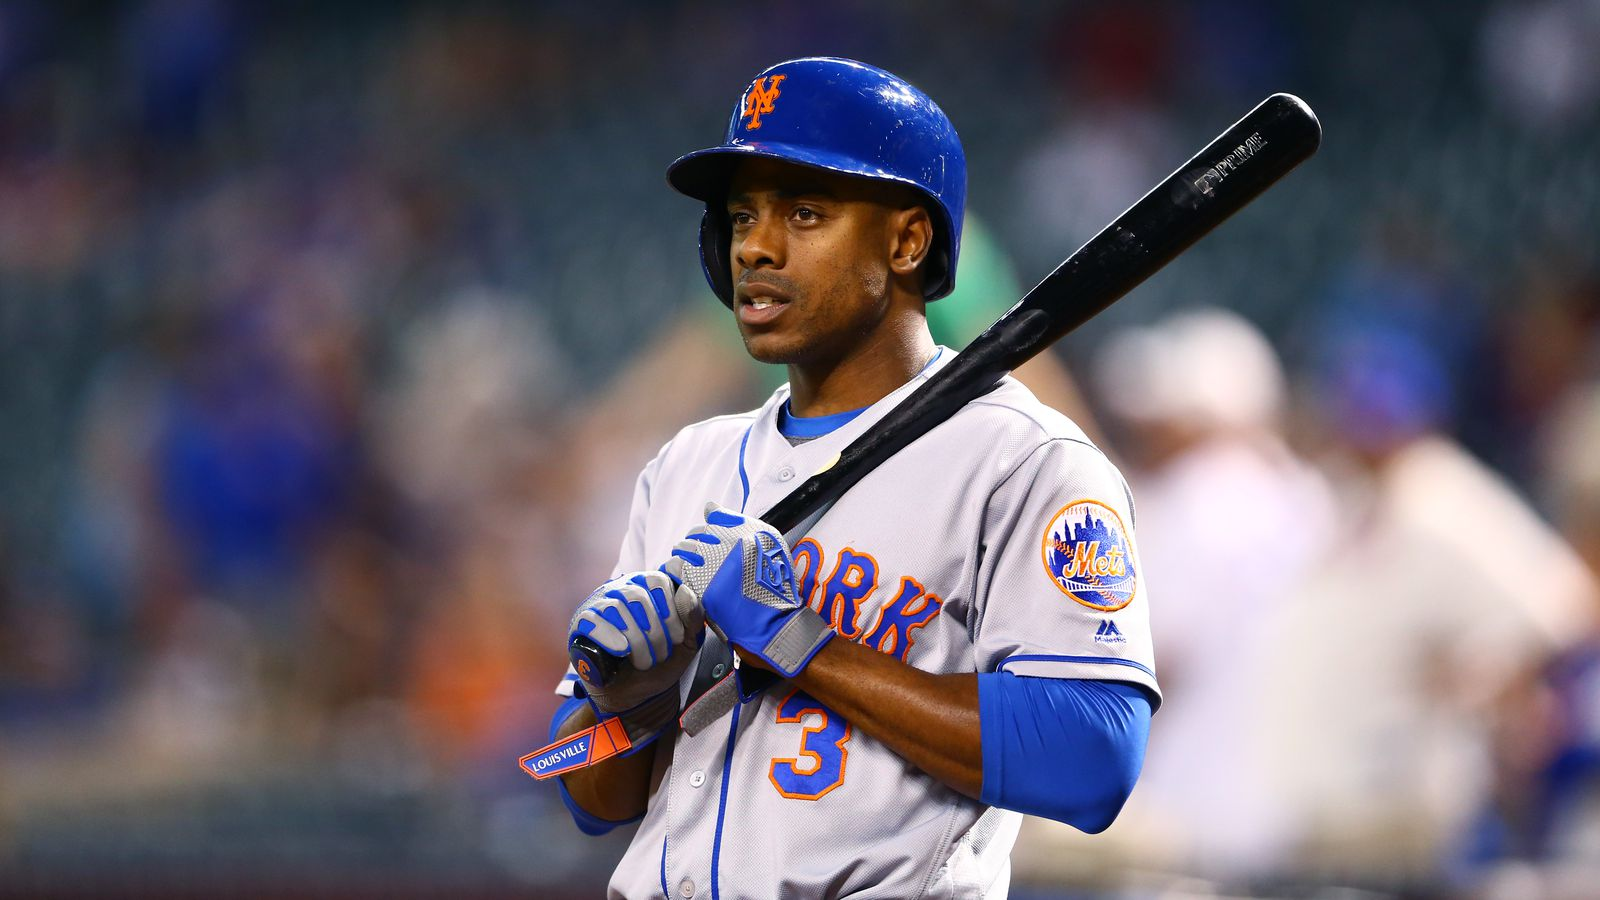 mets top 25 all time home run leaders 23 curtis